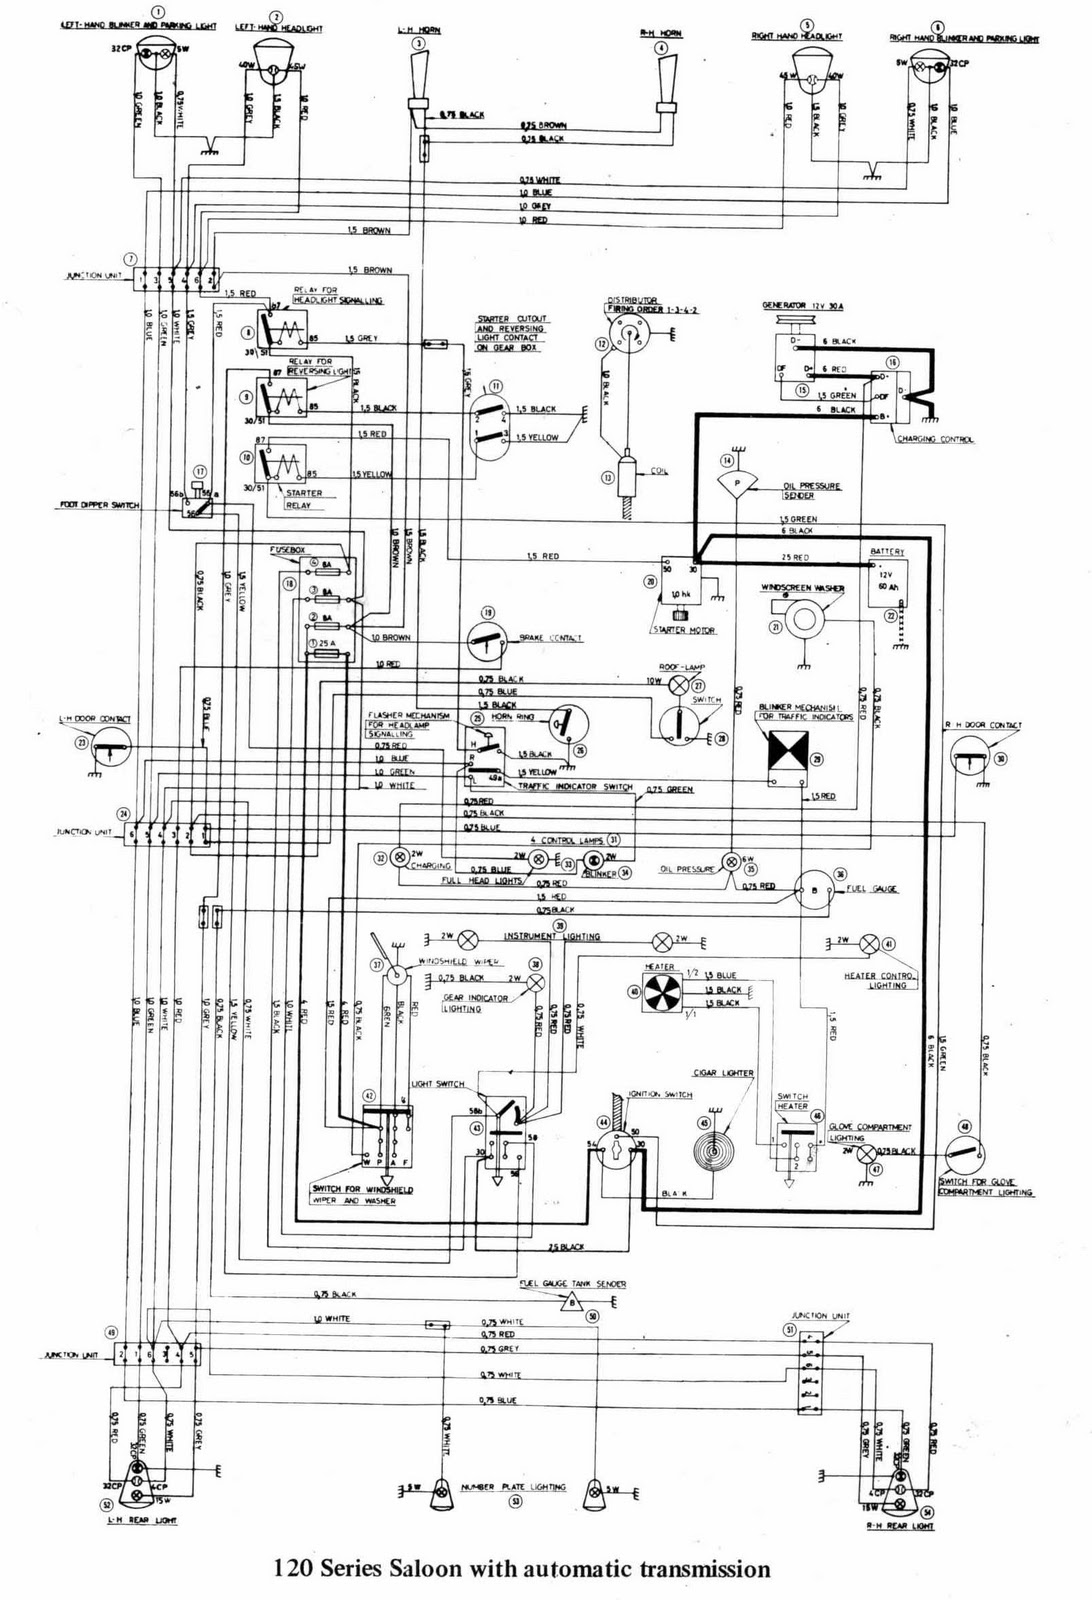 volvo fh radio wiring diagram best 2005 volvo truck wiring diagrams contemporary electrical  [ 1092 x 1600 Pixel ]